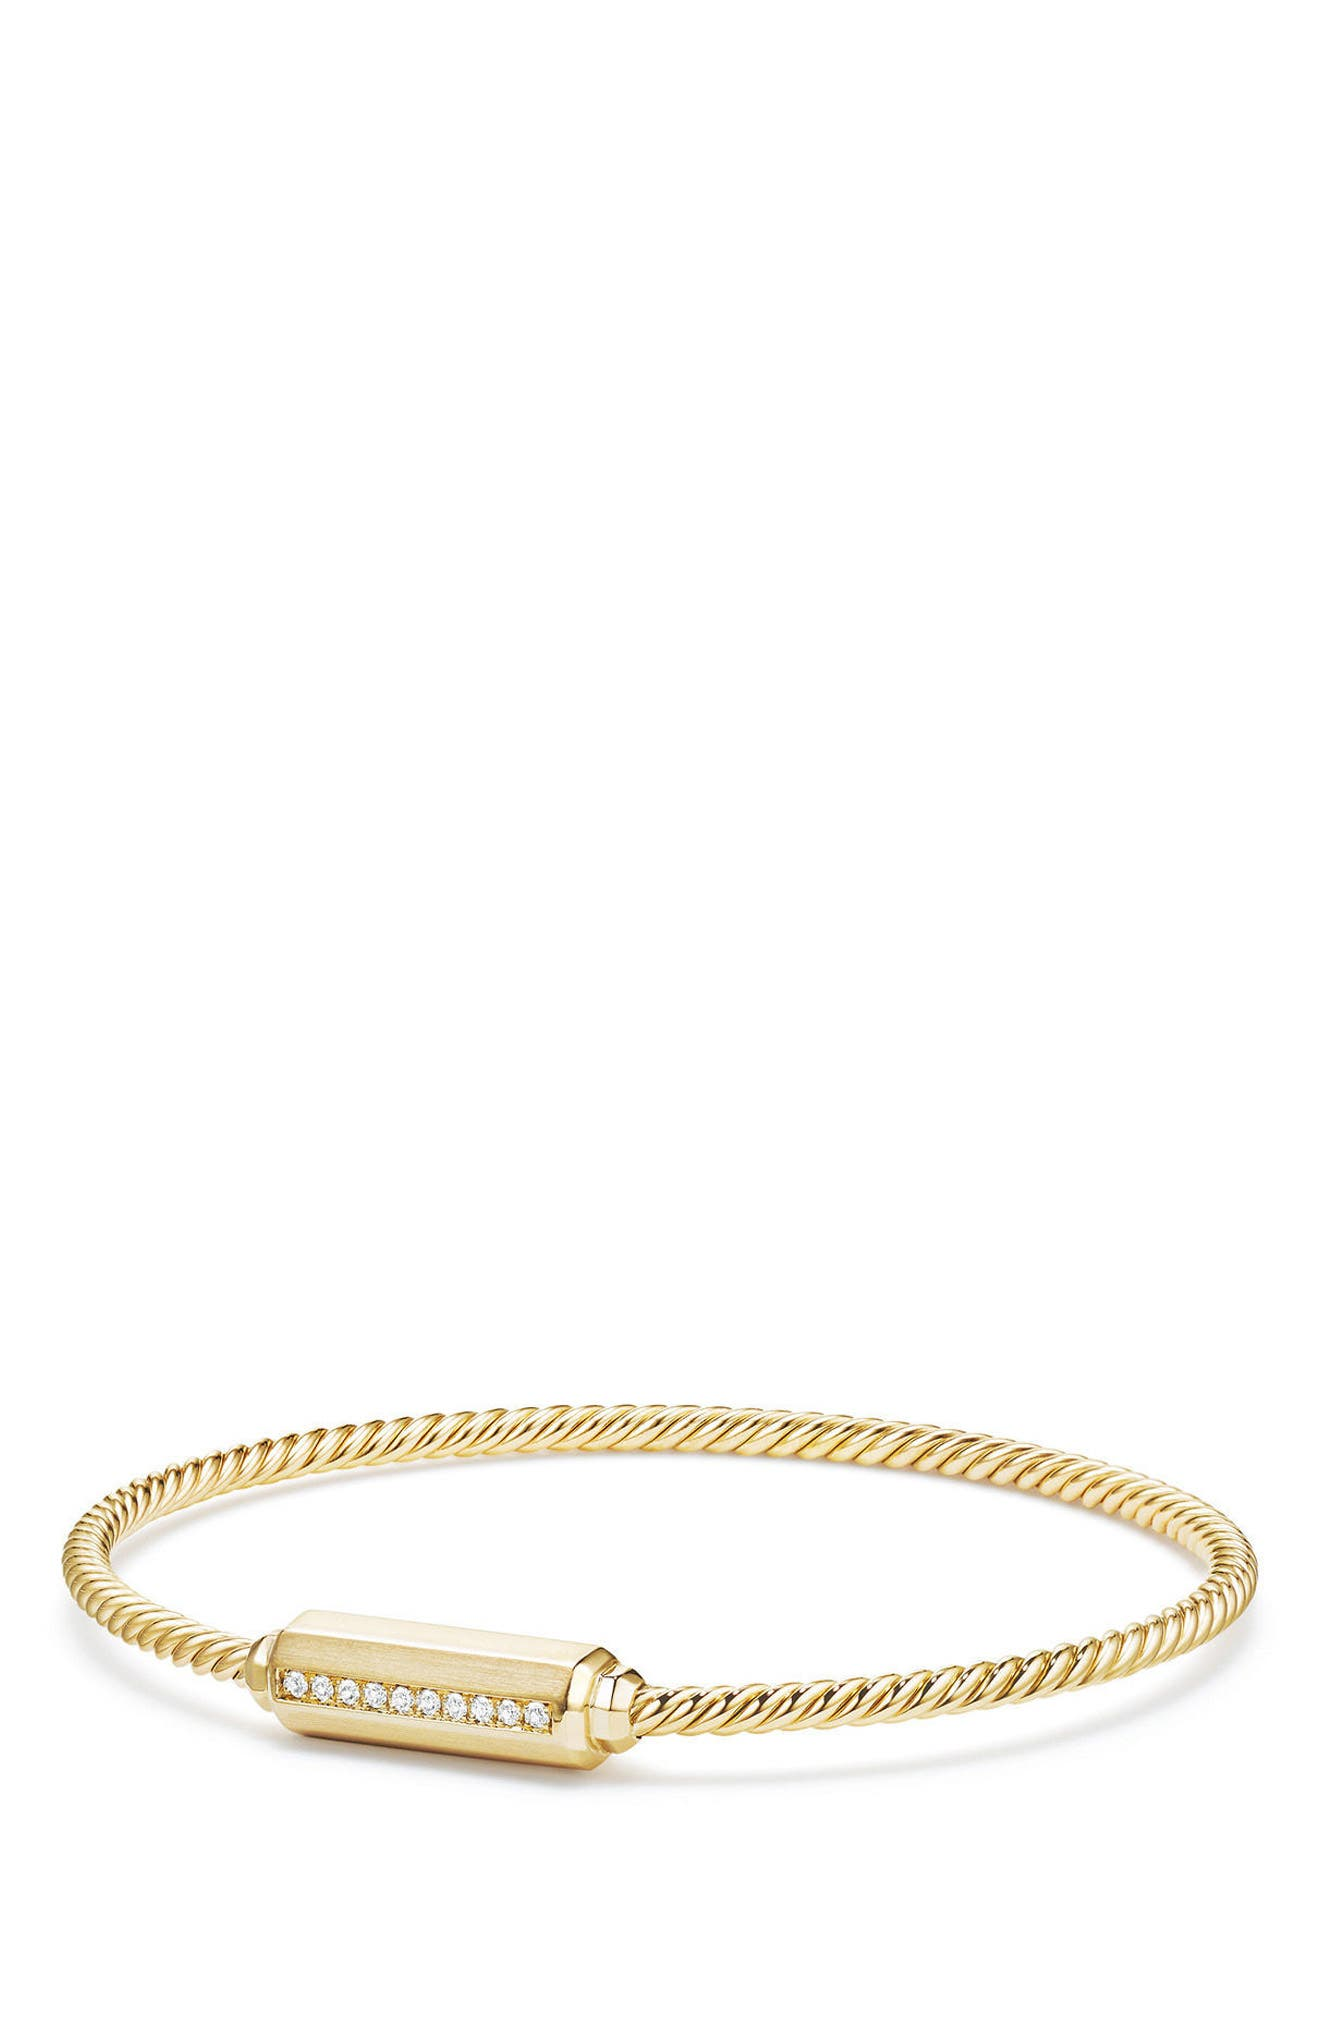 Barrels Bracelet with Diamonds in 18K Gold,                             Main thumbnail 1, color,                             Yellow Gold